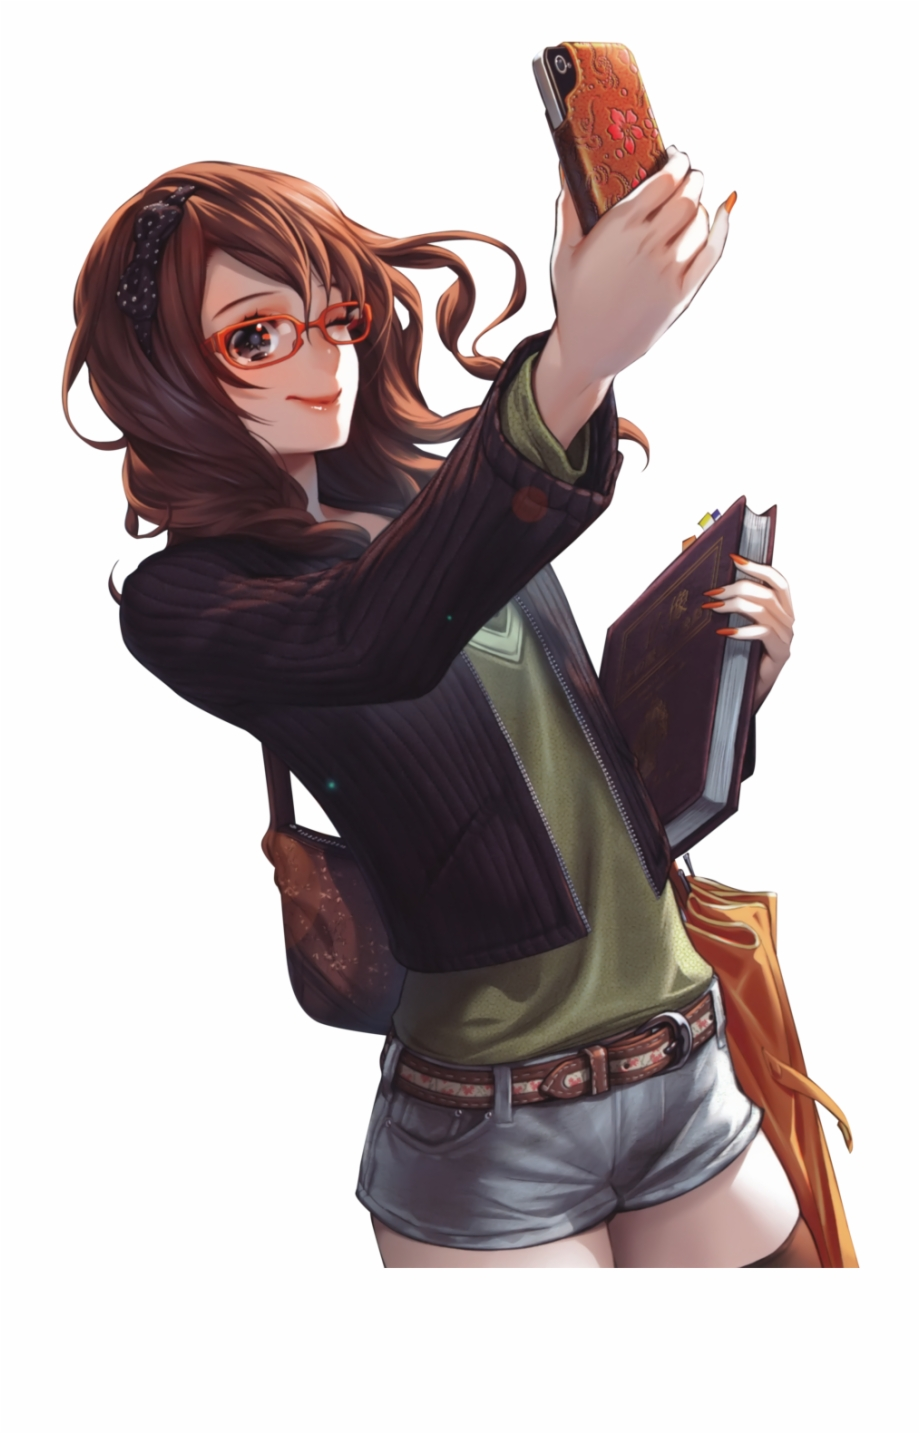 Brown Hair Anime Girl Glasses Phone Rend 921017 Png Images Pngio